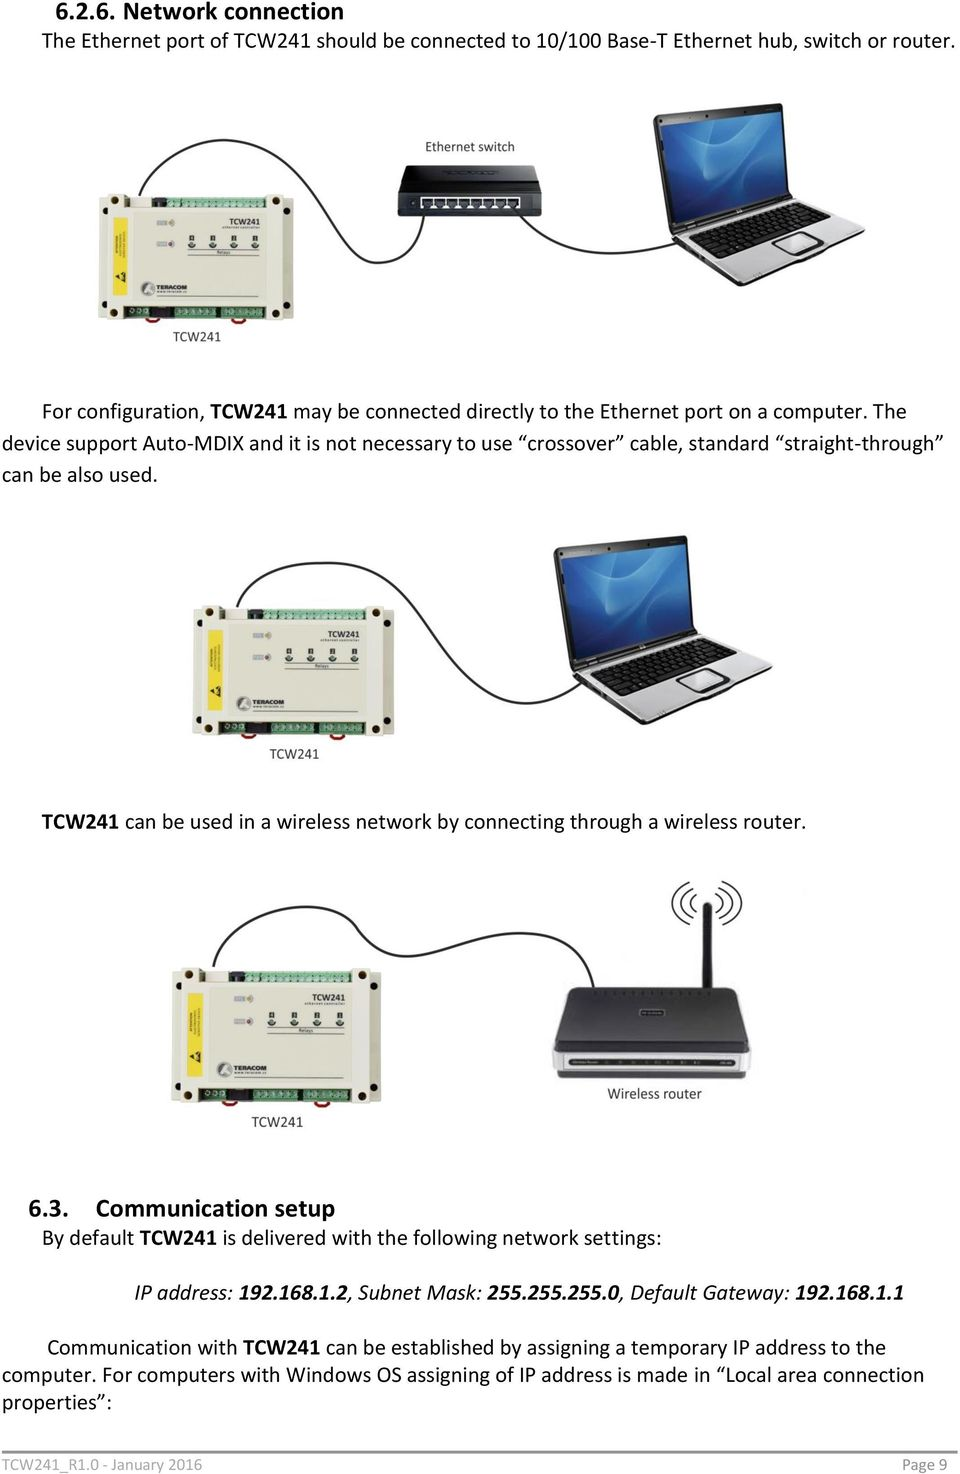 Ethernet Controller Tcw241 Pdf Intranet Network Diagram Use The Parameters Device Support Auto Mdix And It Is Not Necessary To Crossover Cable